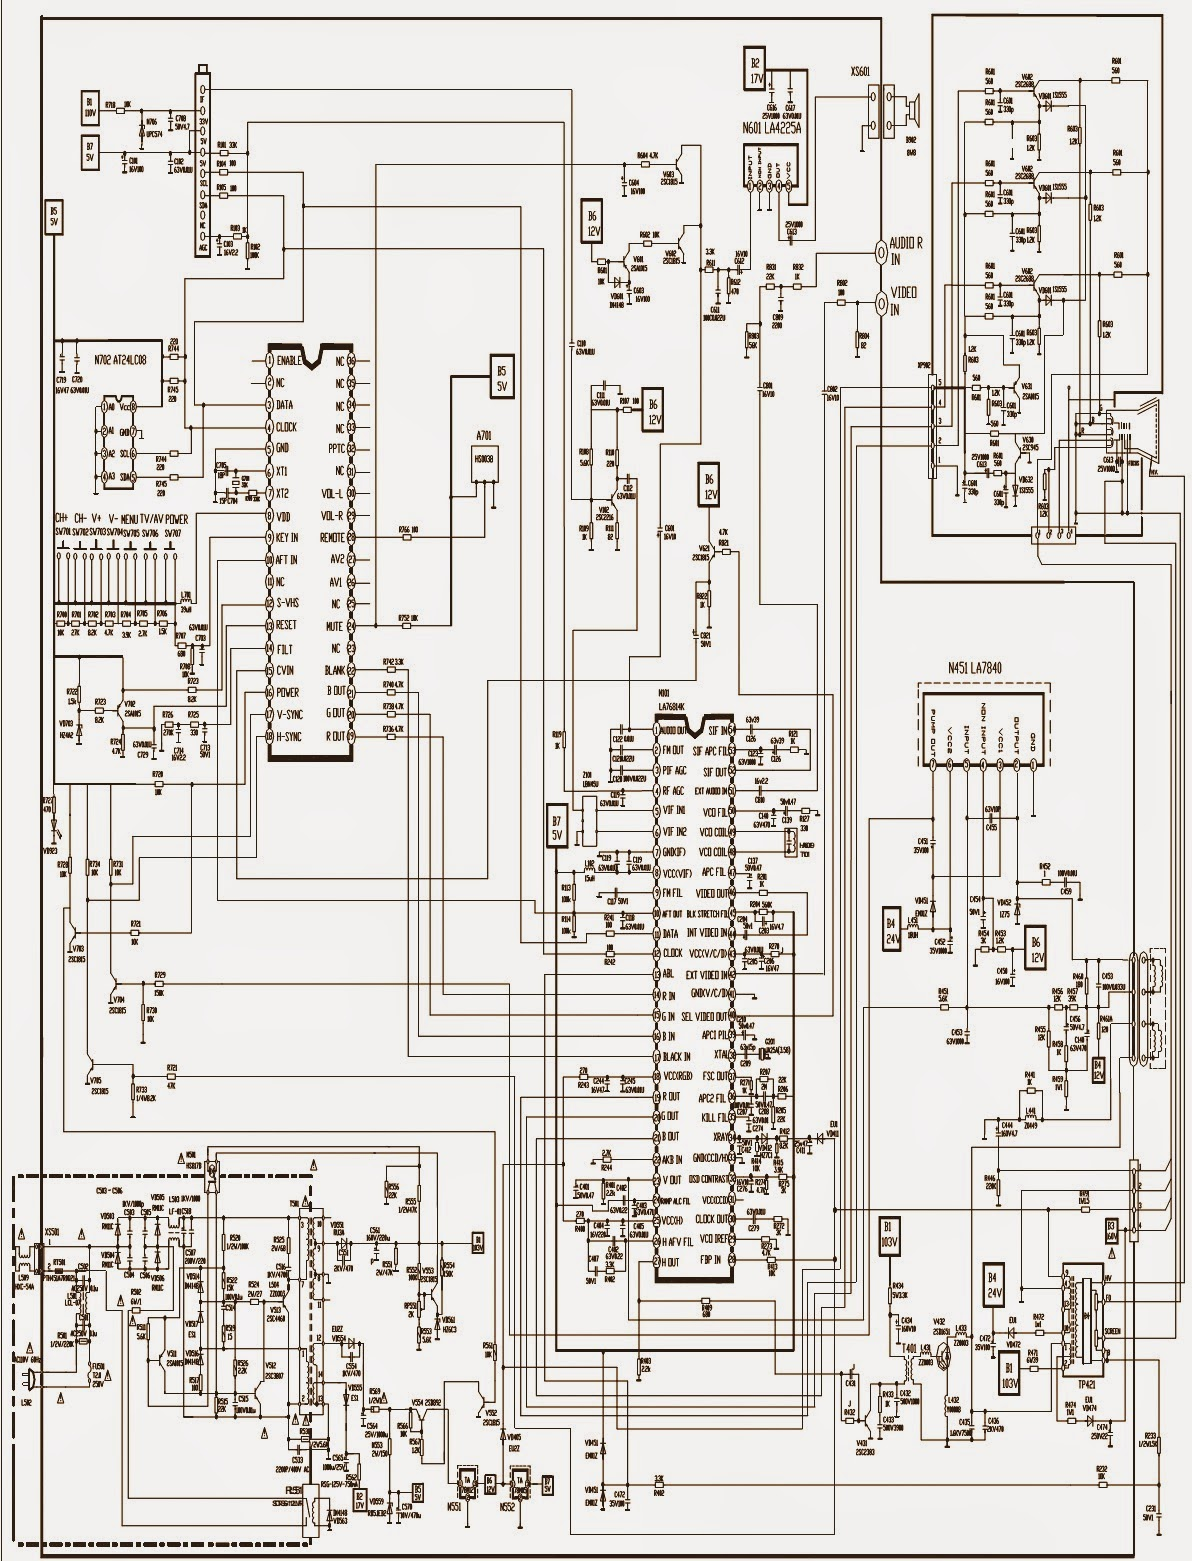 Ic Bus Wiring Diagram Diagrams Old Fire Engine Get Free Image About School Schematic Truck